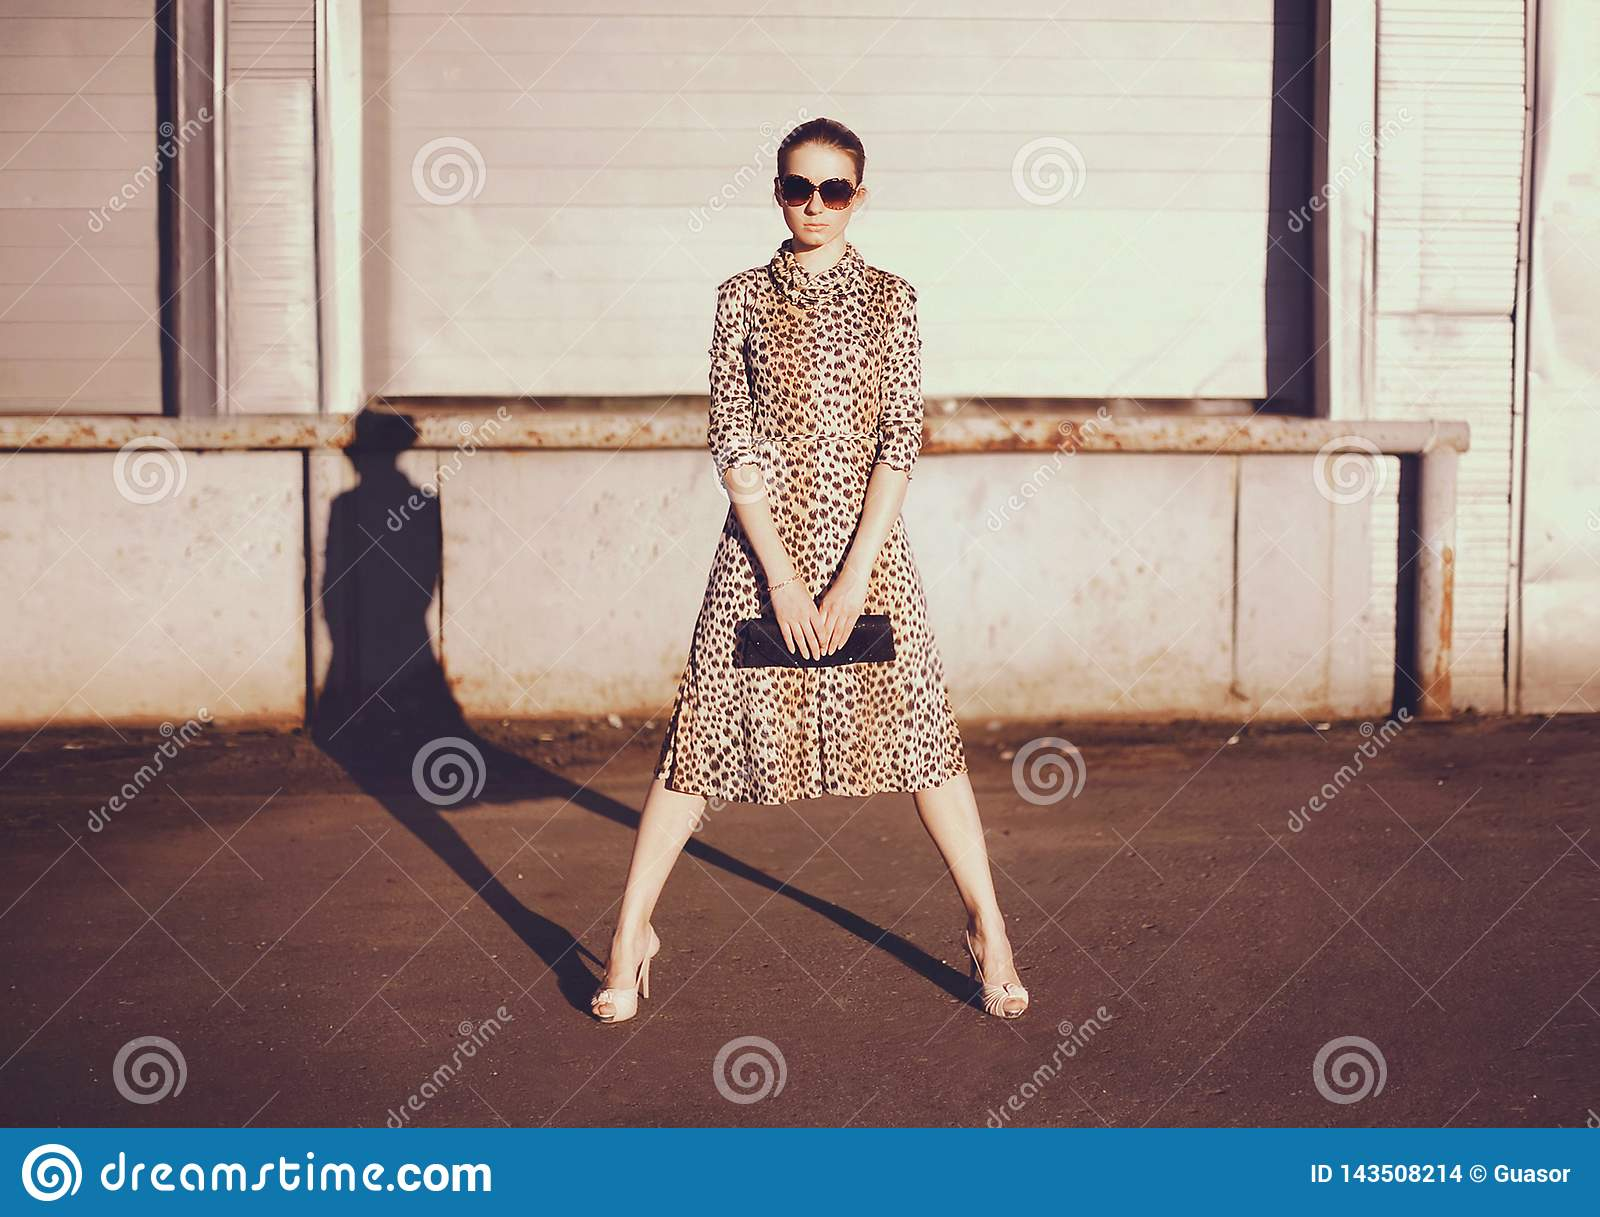 Fashionable confident woman in dress with leopard print, female model holding handbag clutch posing evening casts a shadow on city